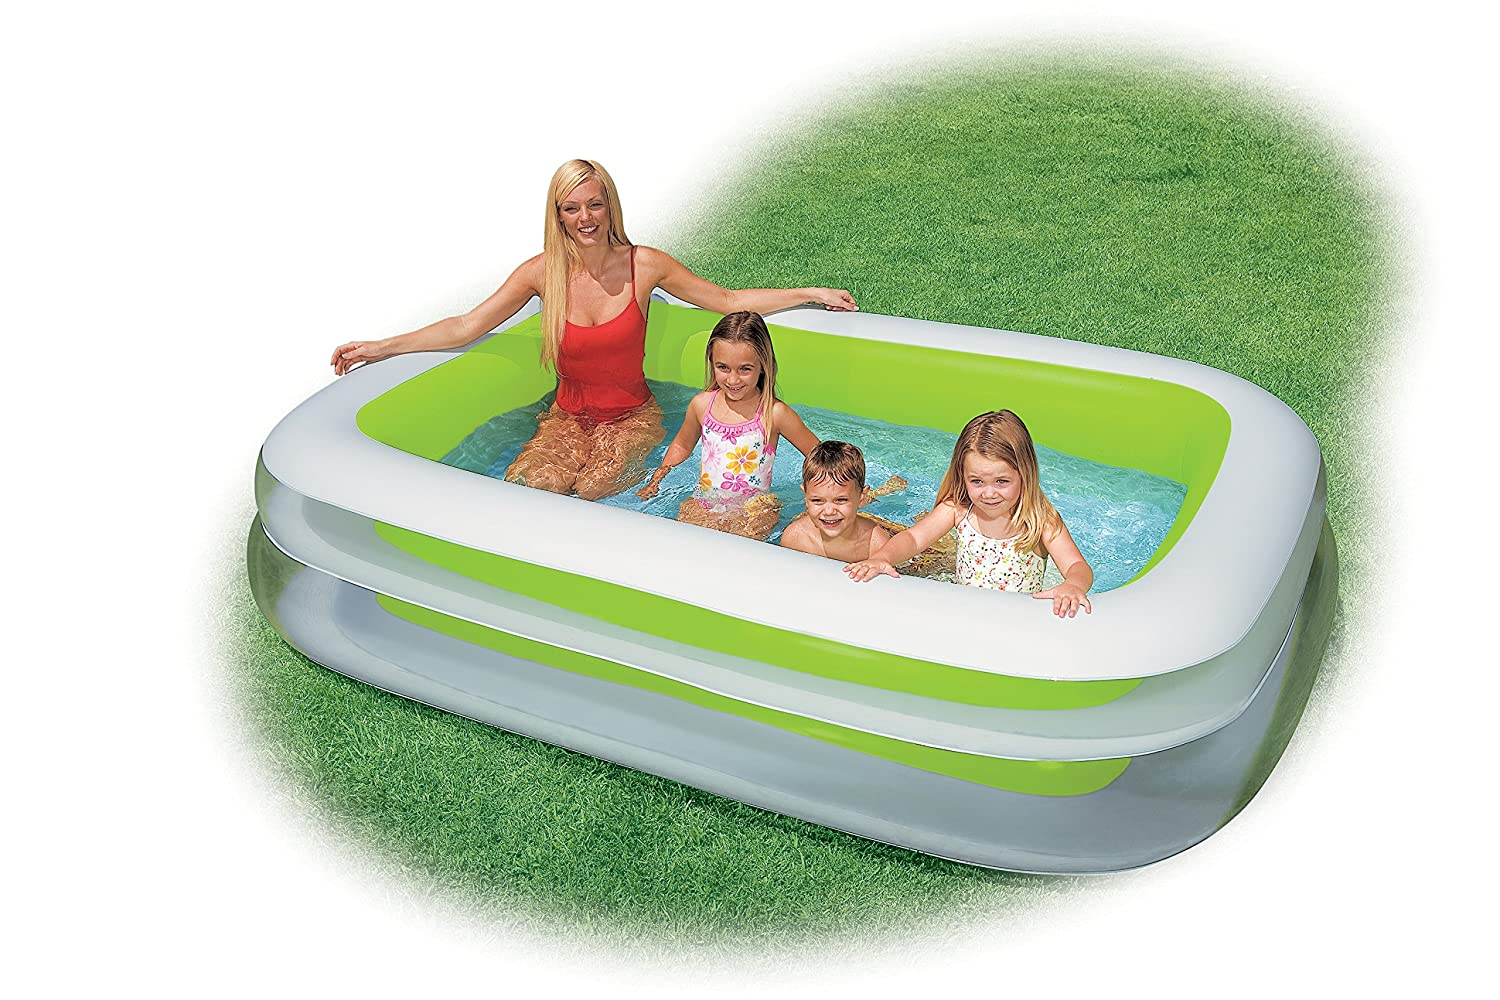 Intex swim center family inflatable pool 103 x 69 x 22 for ages 6 new f ebay Intex inflatable swimming pool